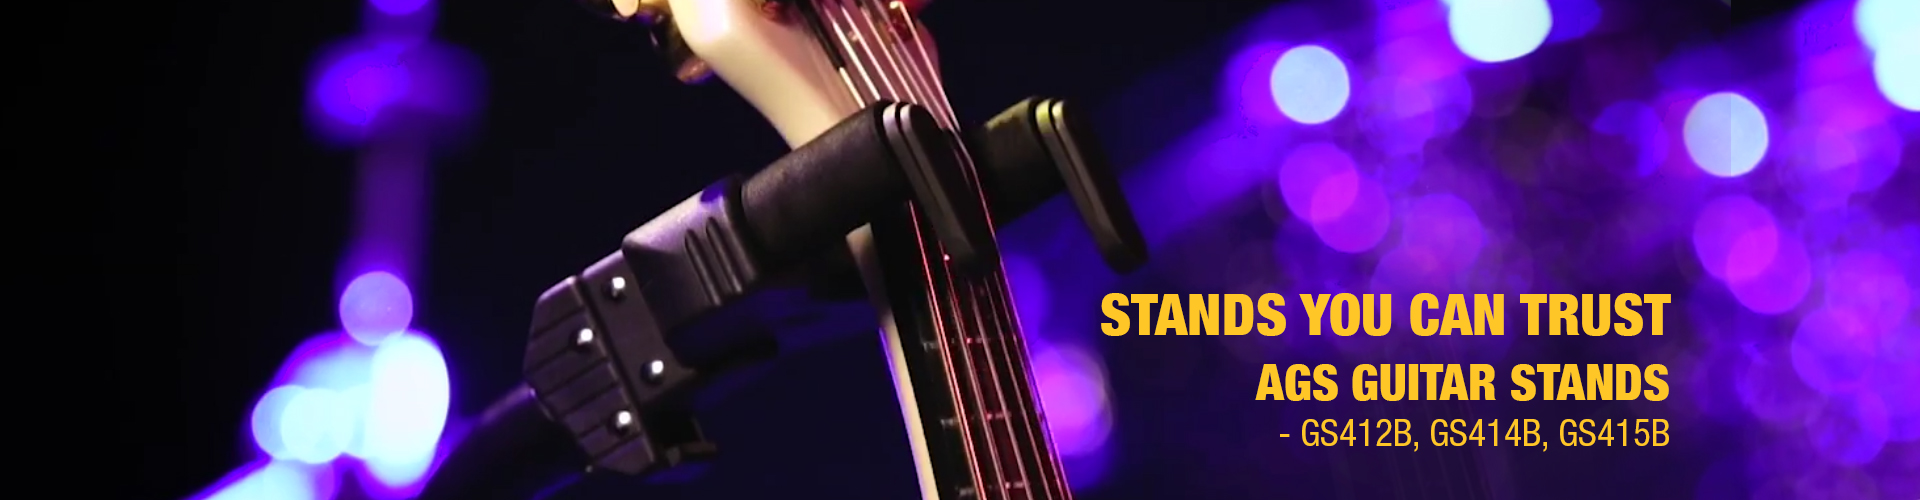 hercules_hero_slide_ags-guitar-stands